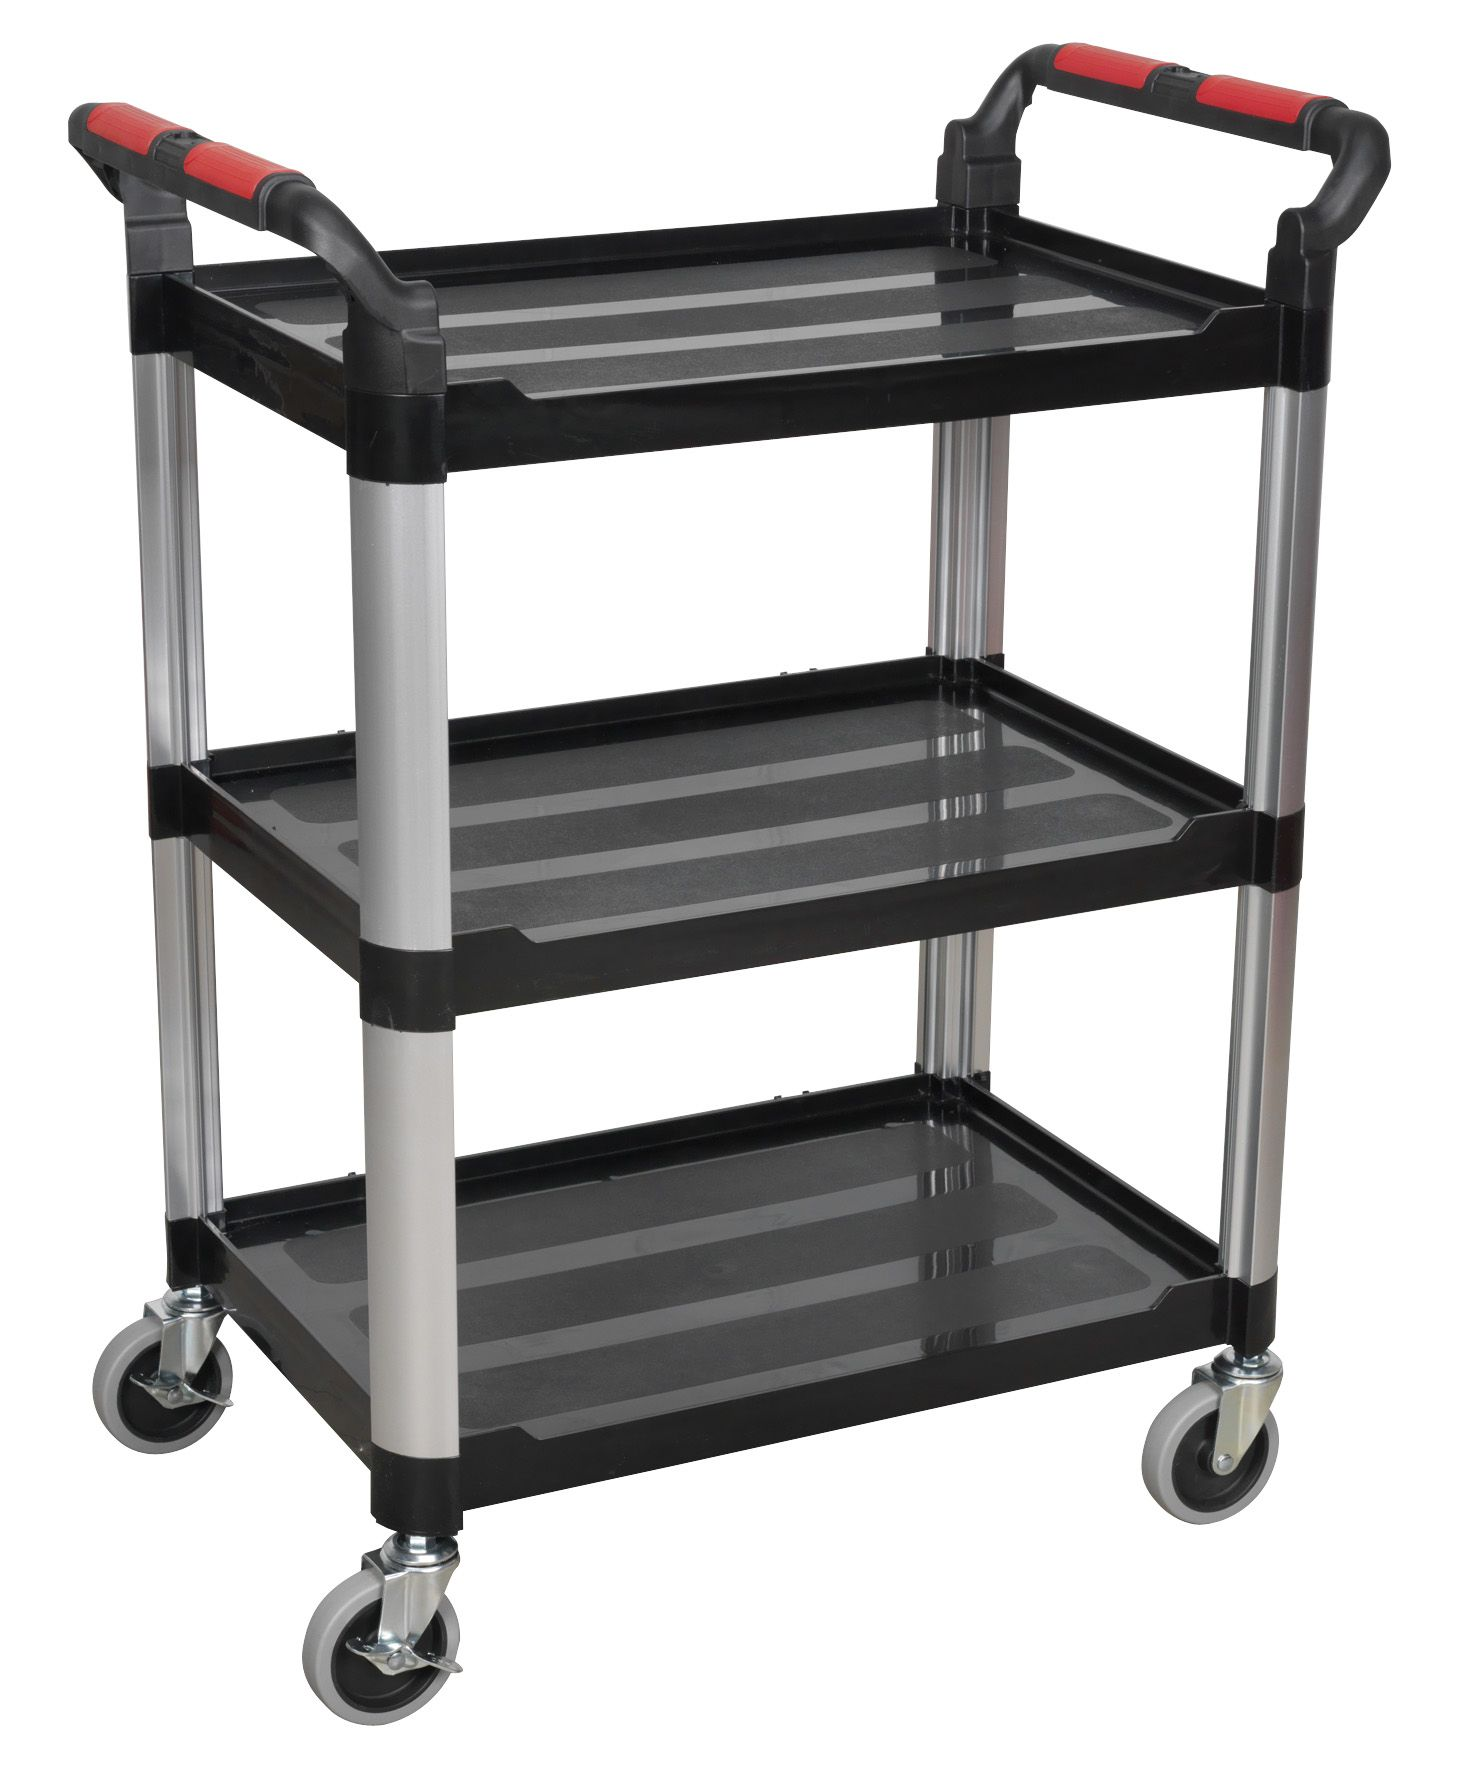 Sealey Workshop Trolley 3-Level Composite